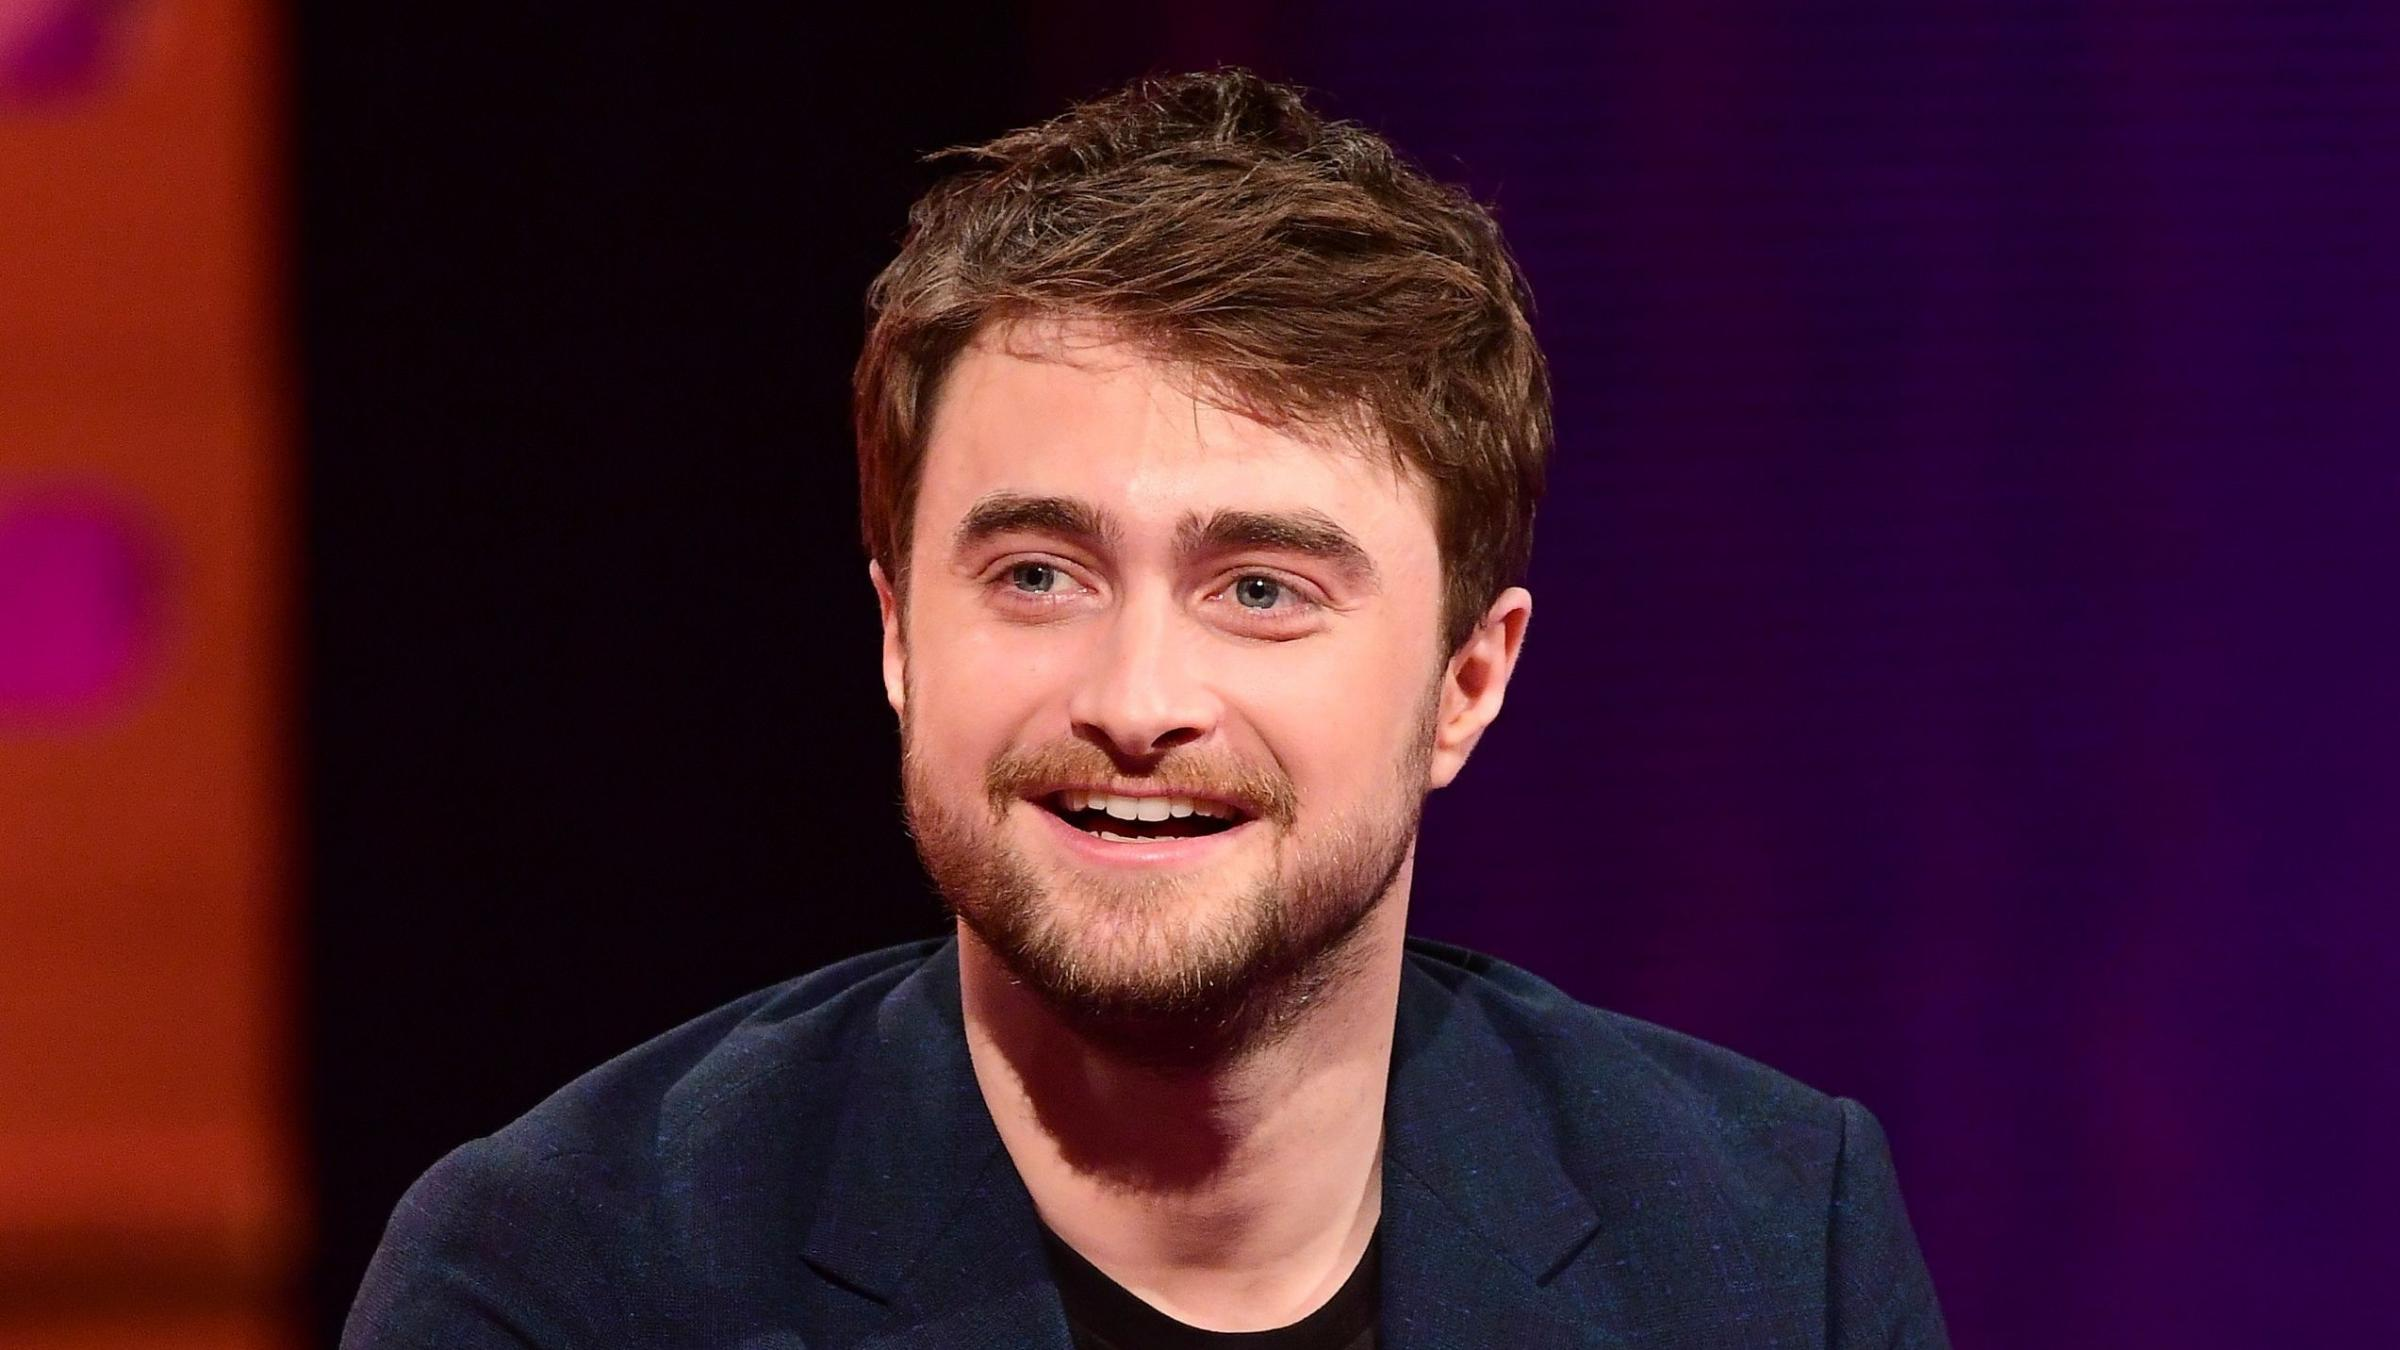 Daniel Radcliffe returning to Broadway in new production